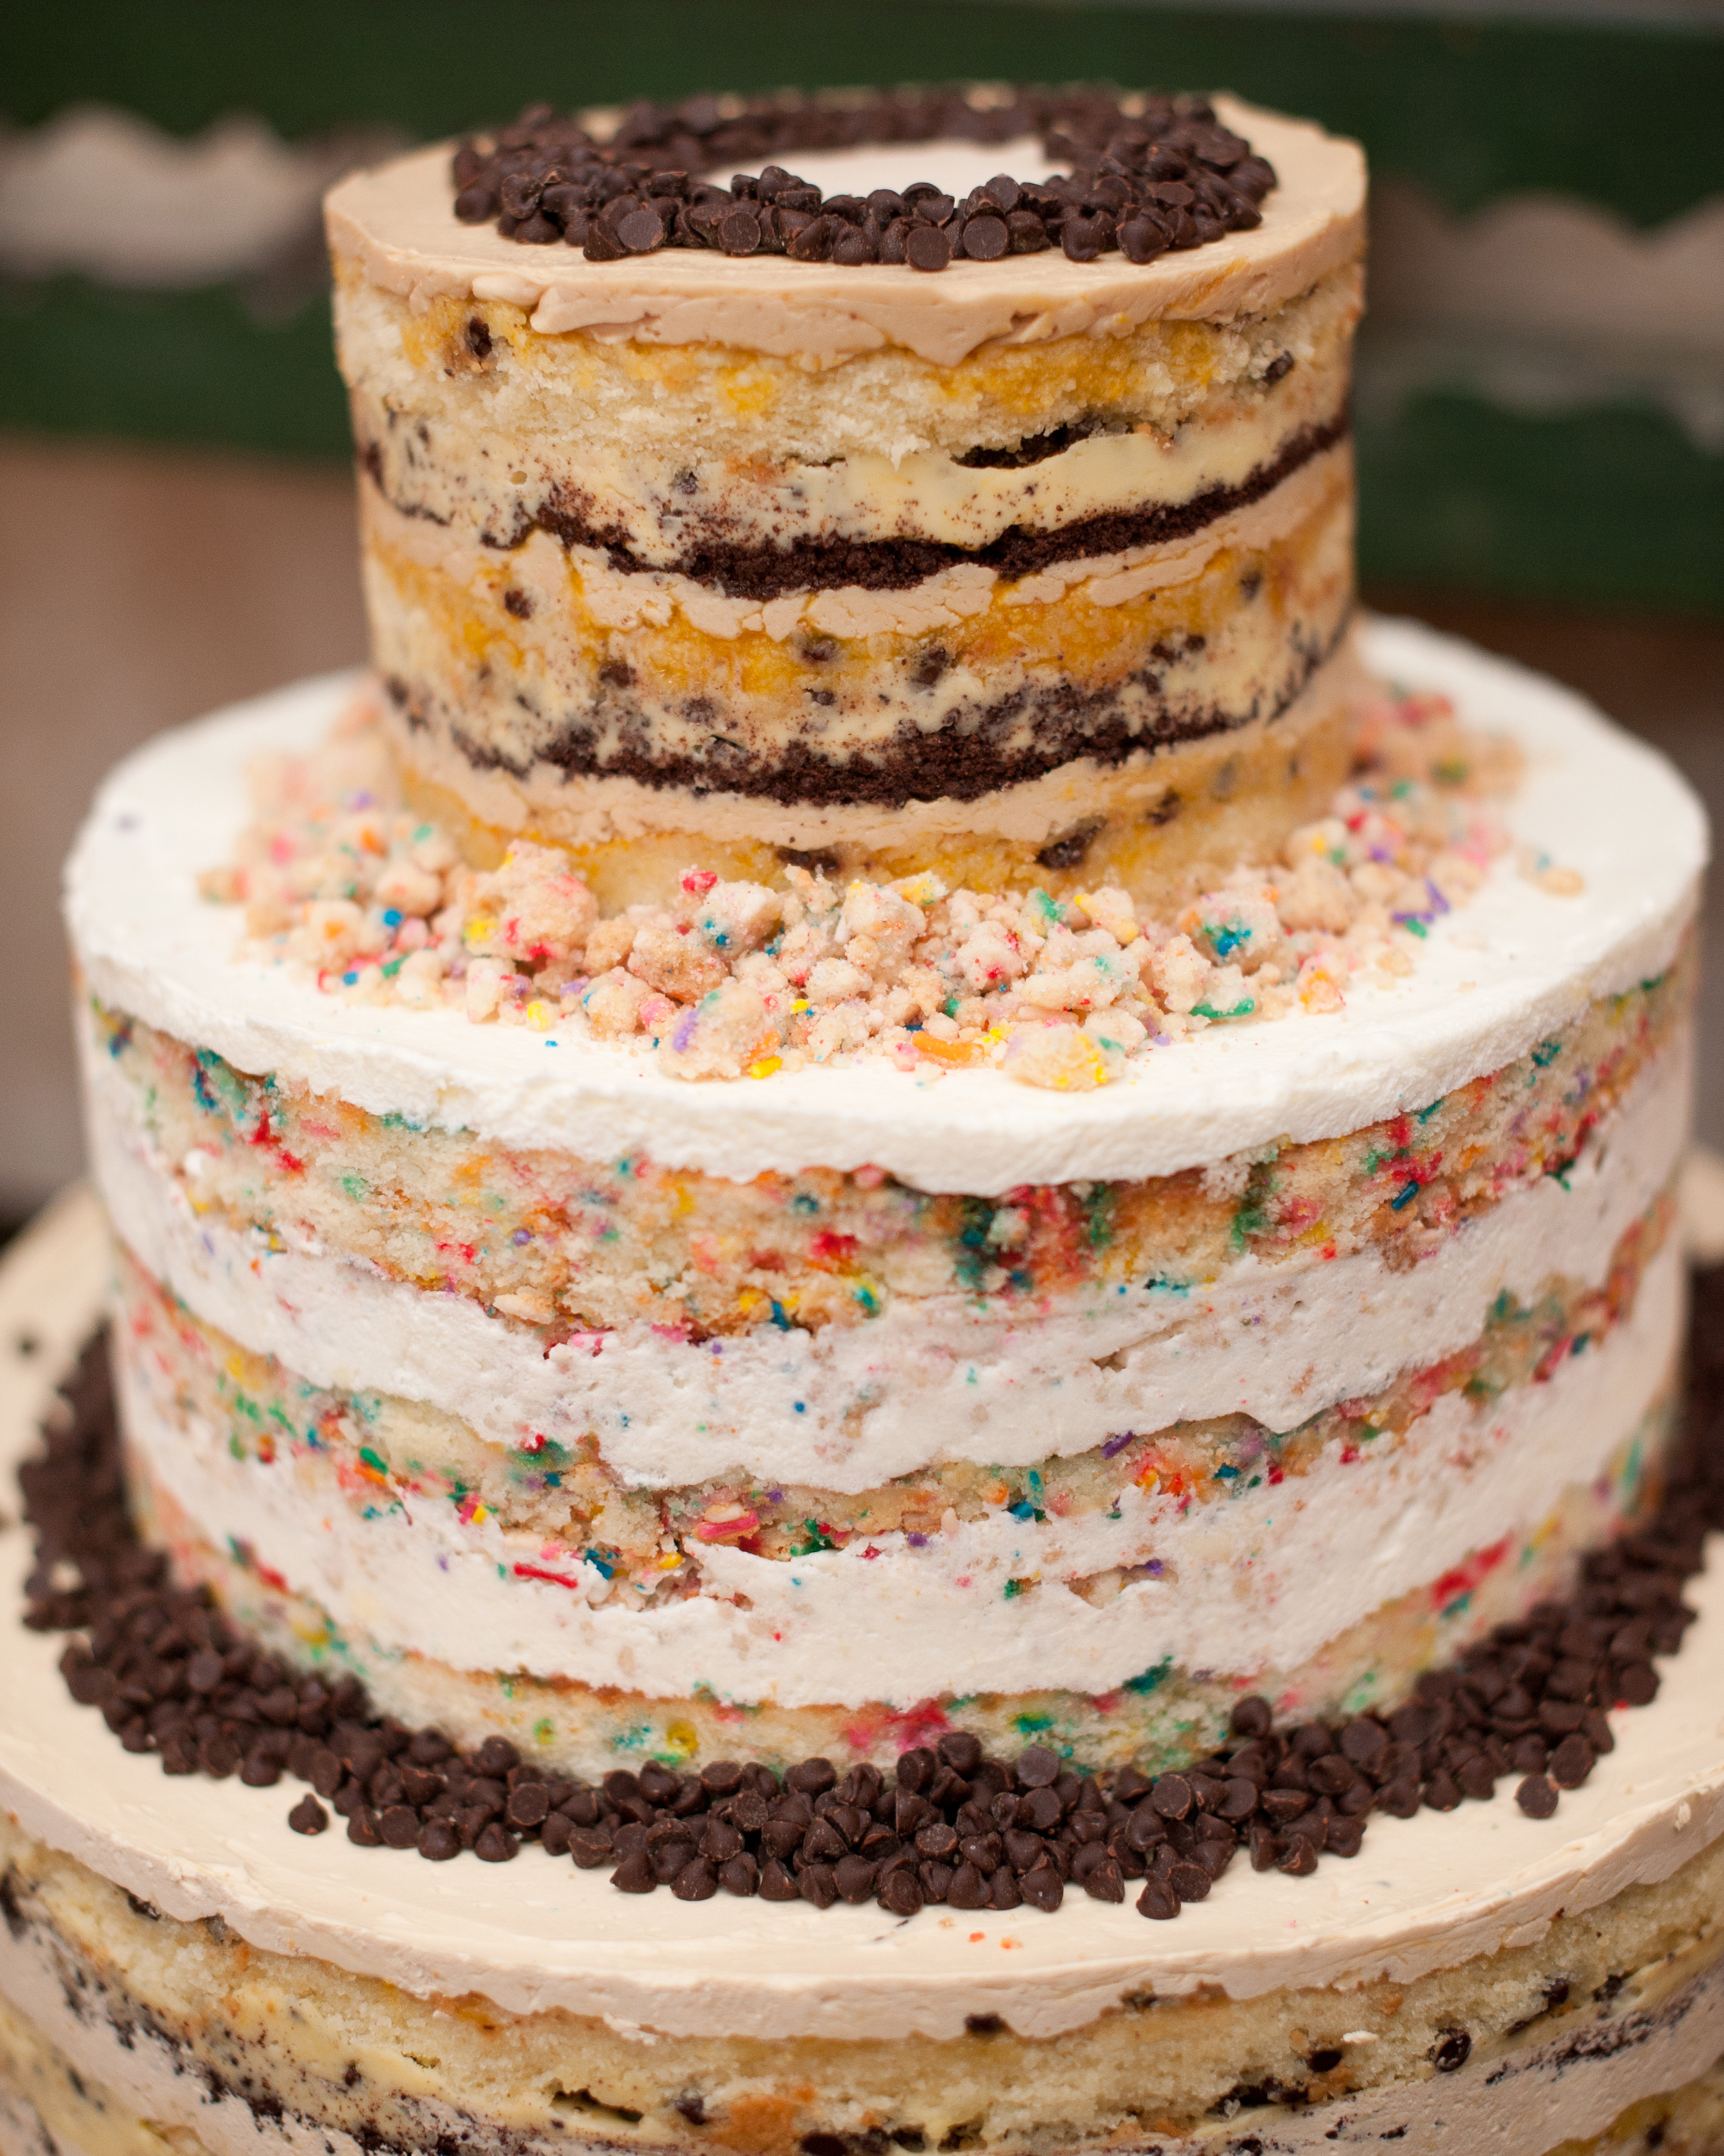 milk-bar-cake-birthday-choc-chip-0415.jpg